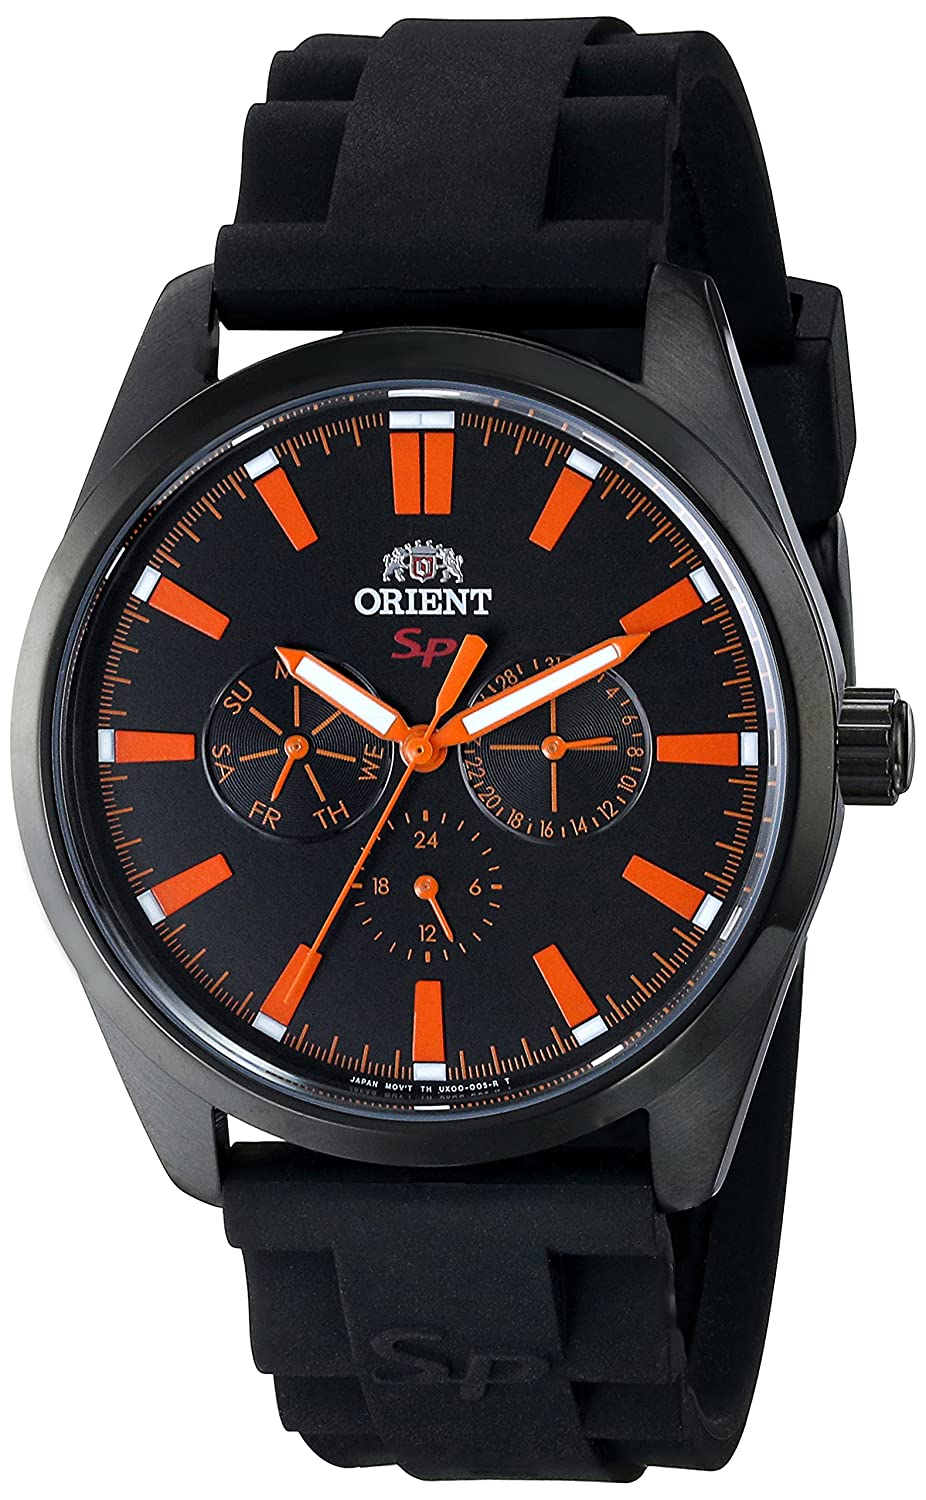 Amazon.com: Orient Mens FUX00002B0 SP Analog Display Japanese Quartz Black Watch: Watches